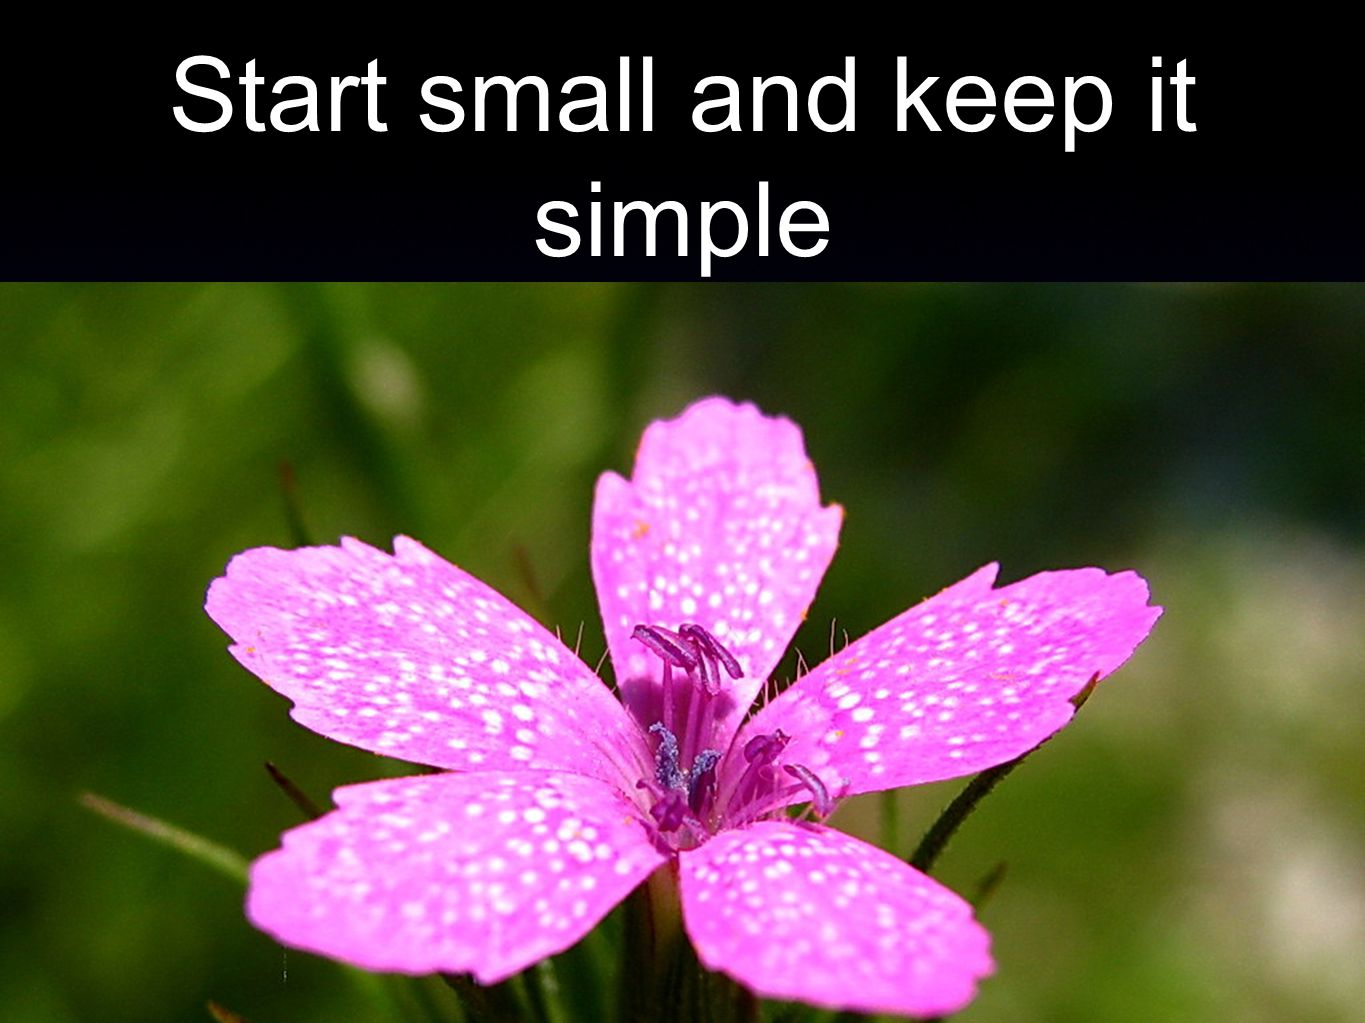 Start small and keep it simple